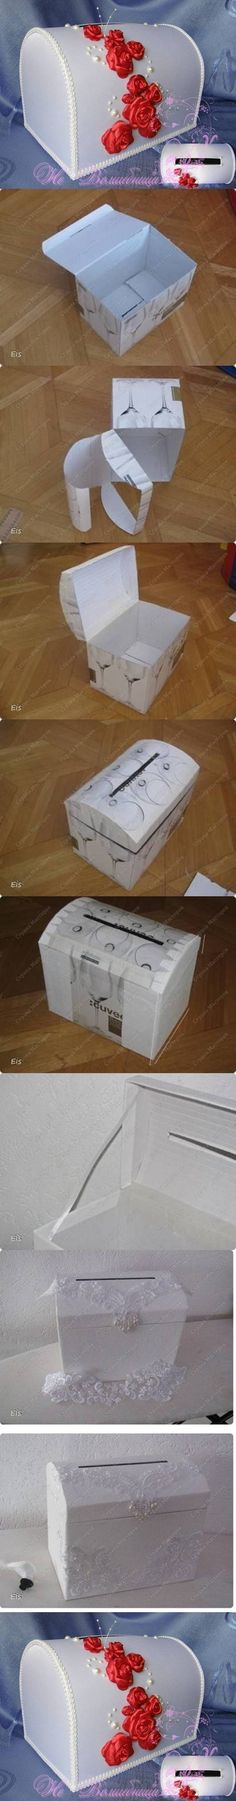 DIY Cardboard Box Art